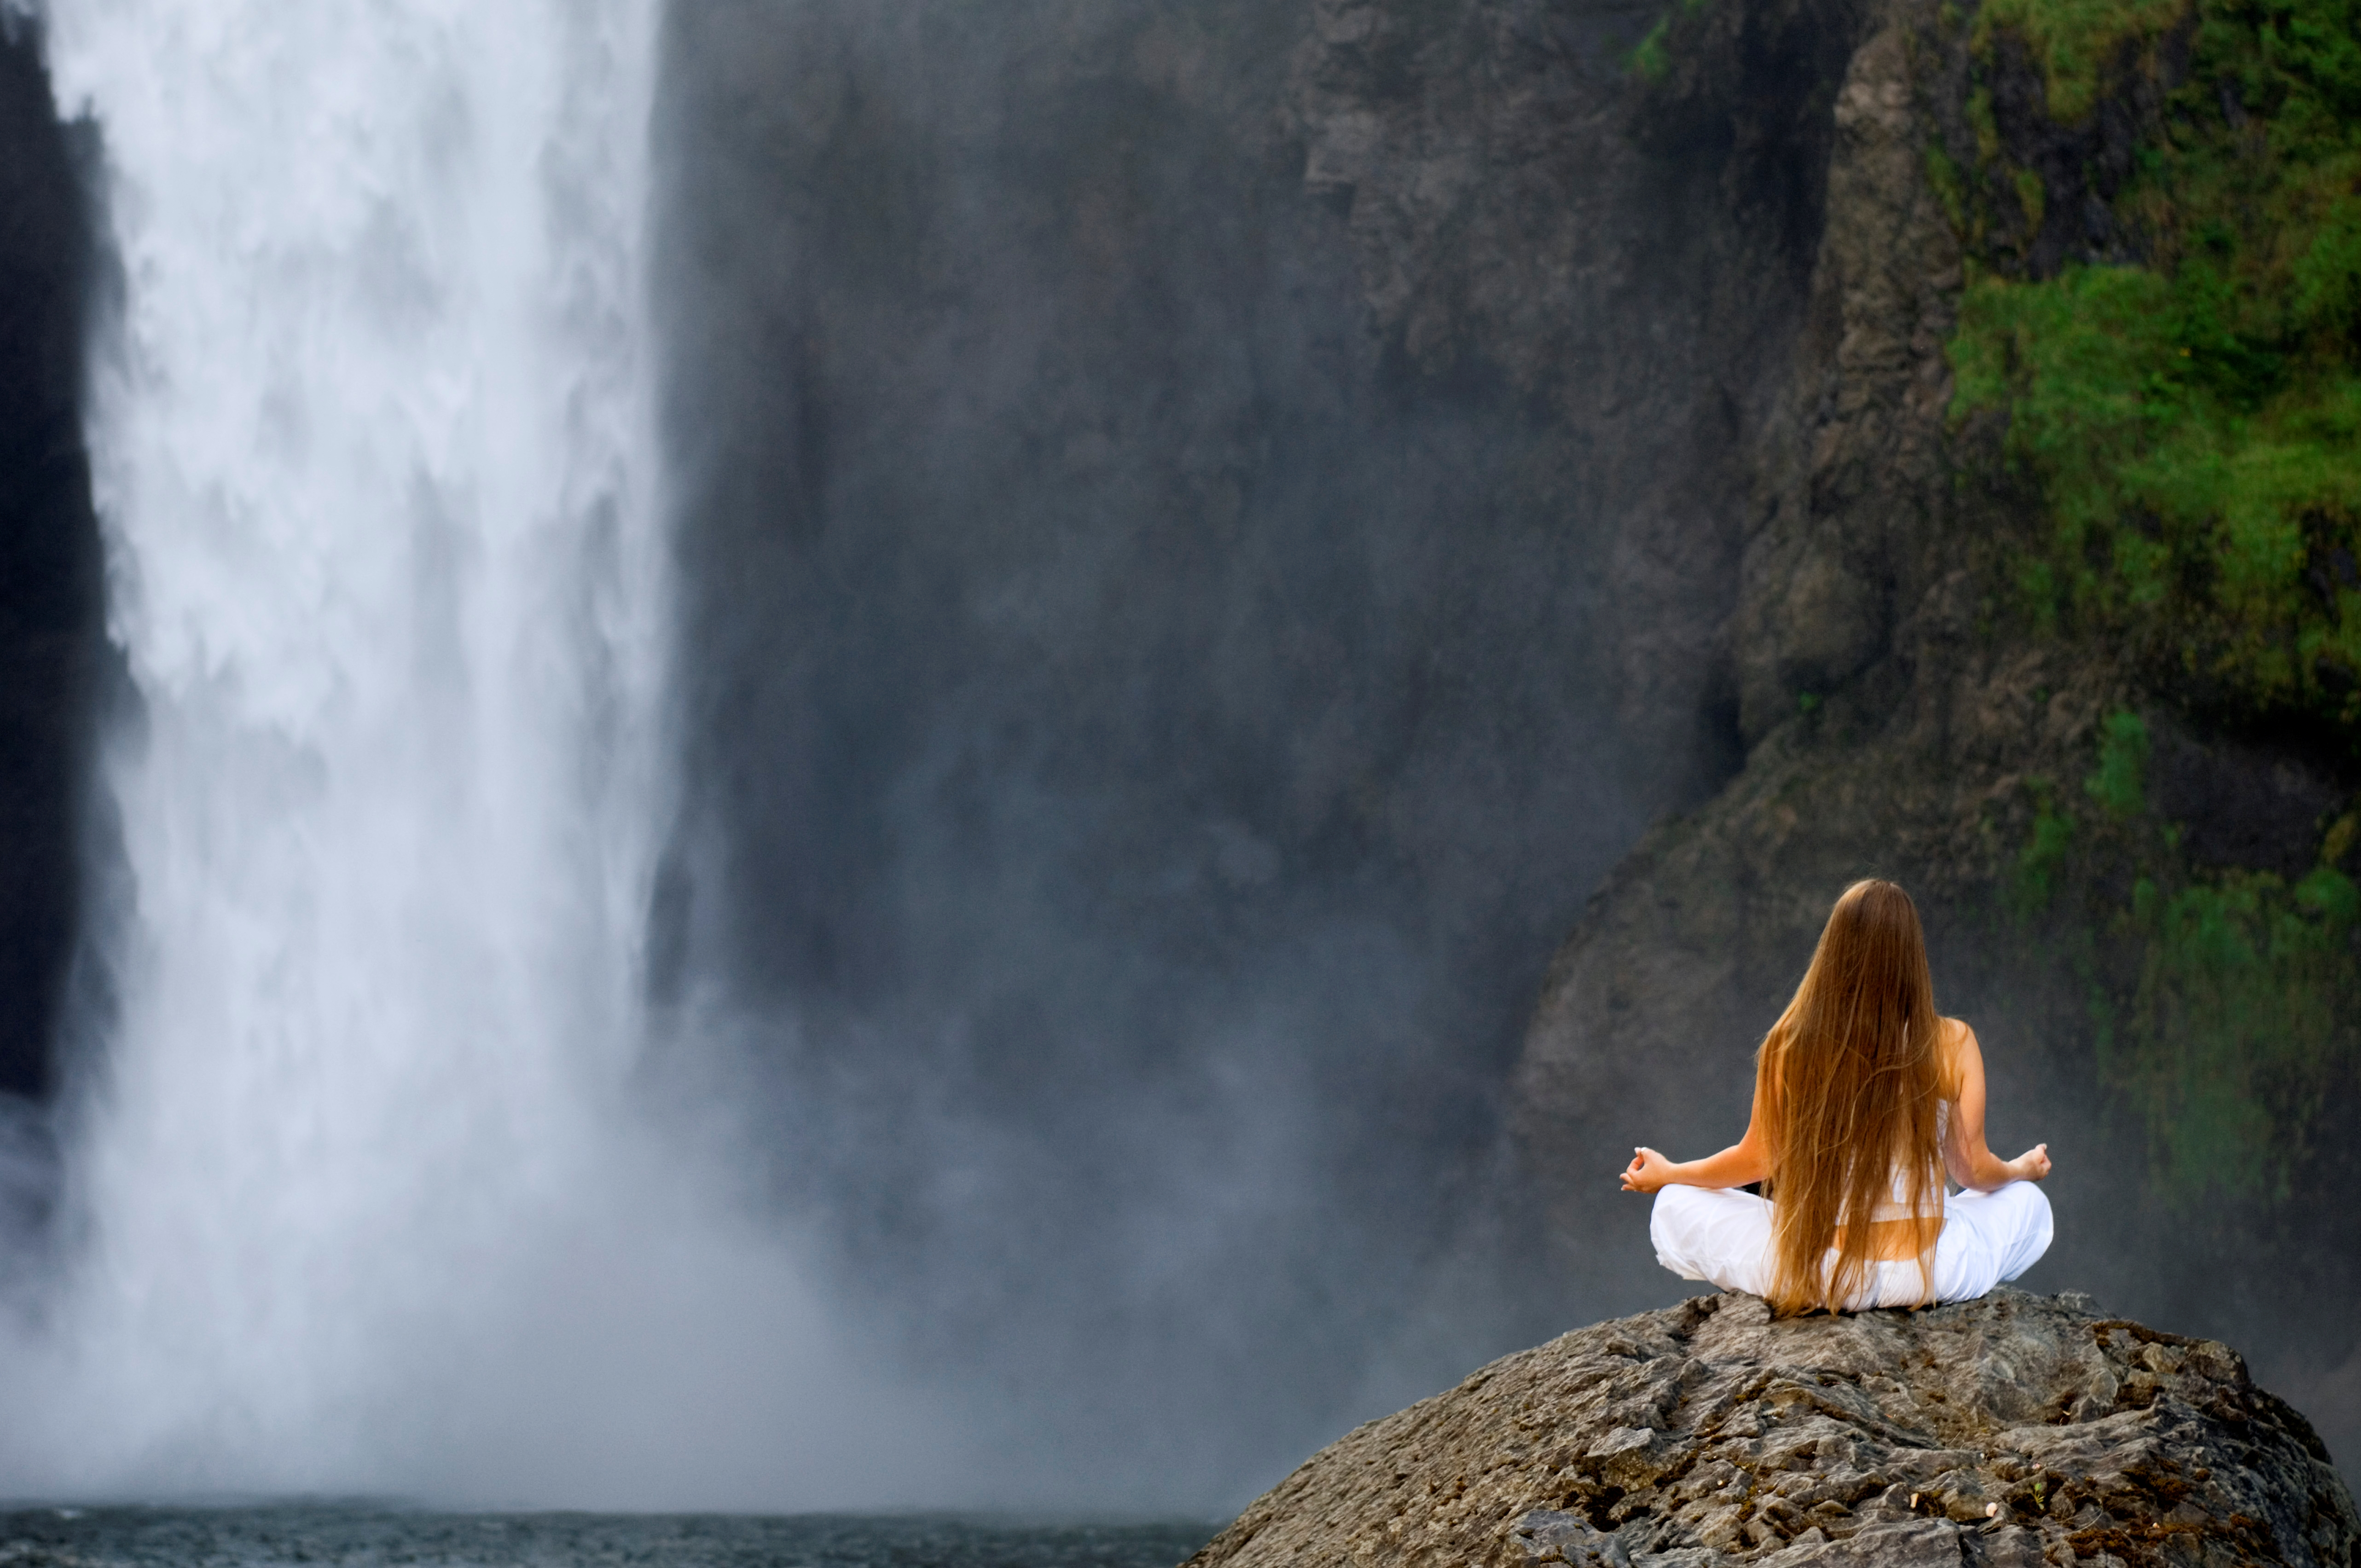 Top 4 Apps For Meditation and Calming